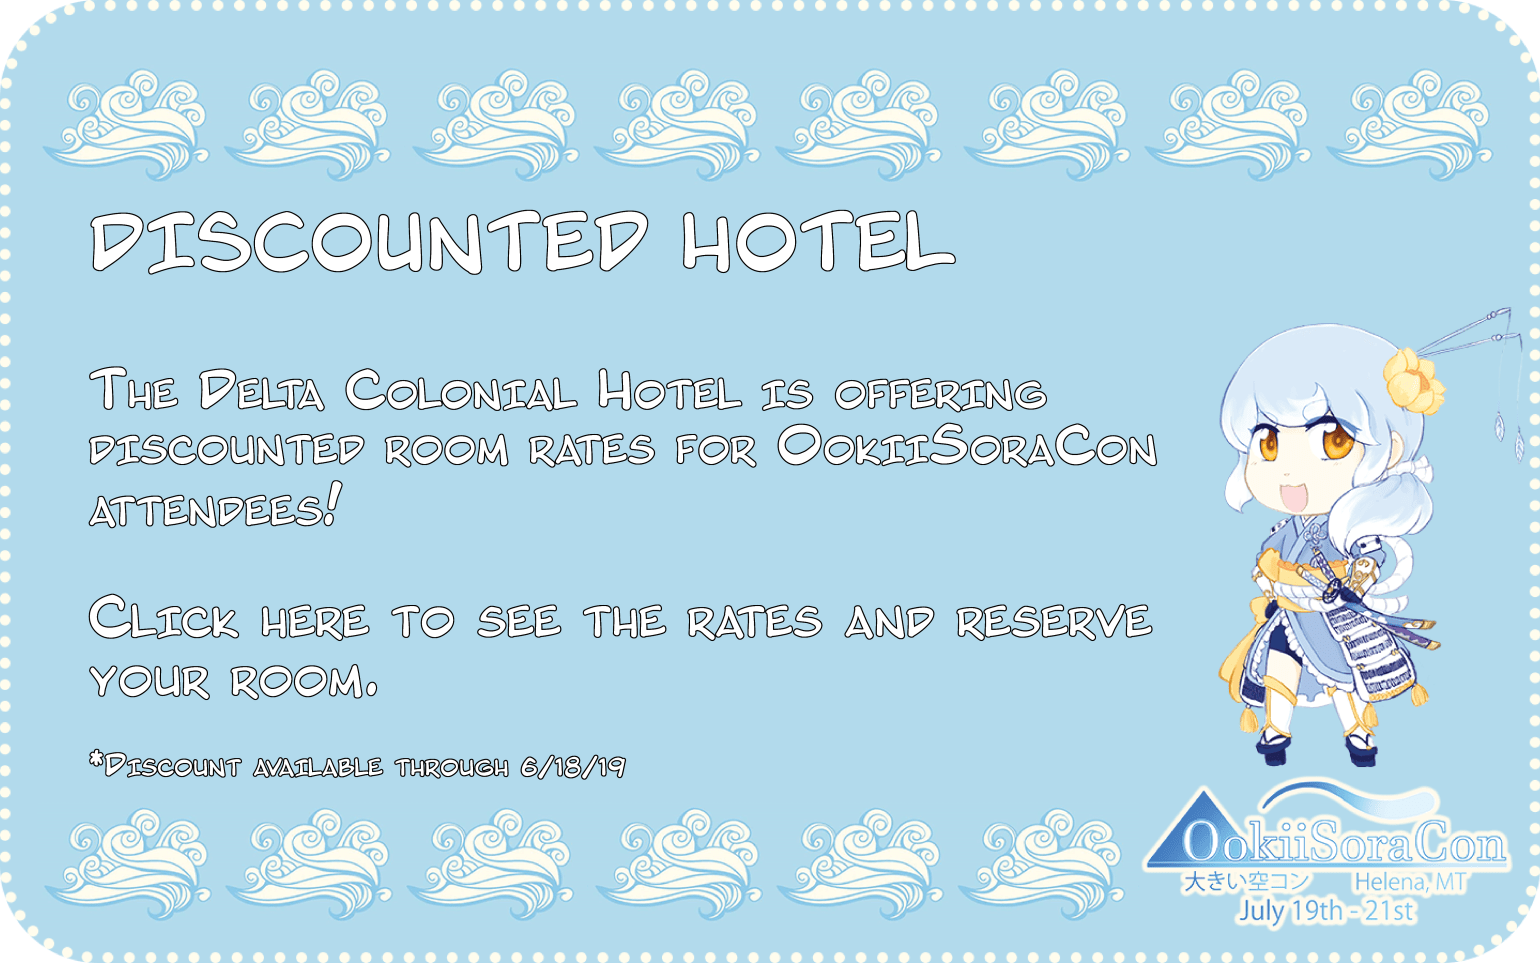 Discounted Hotel